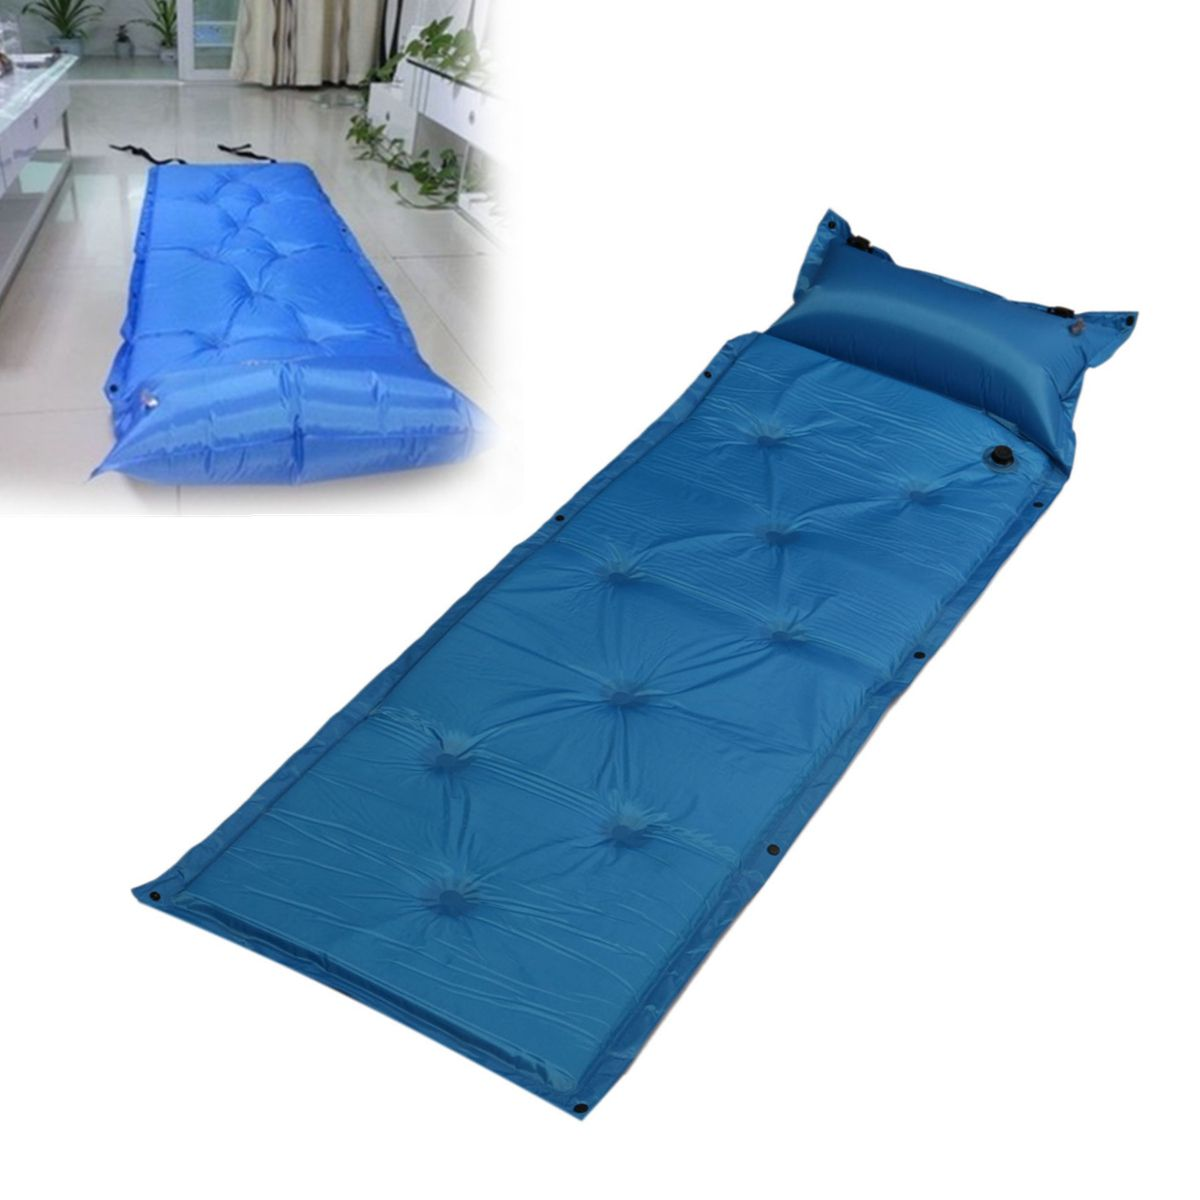 4pcs Self Inflating Mat Outdoor Tent Sleeping Pad Hiking Pillow Air Mattress Camping Outdoor Tent Air Mattress Camping Sleeping Pads Outdoor Tent